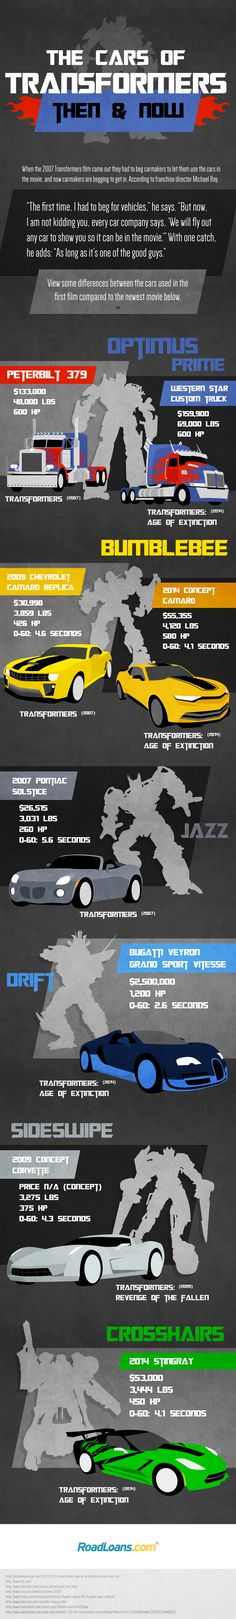 See how the cars have changed from the first Transformers movie to the latest, Transformers: Age of Extinction.